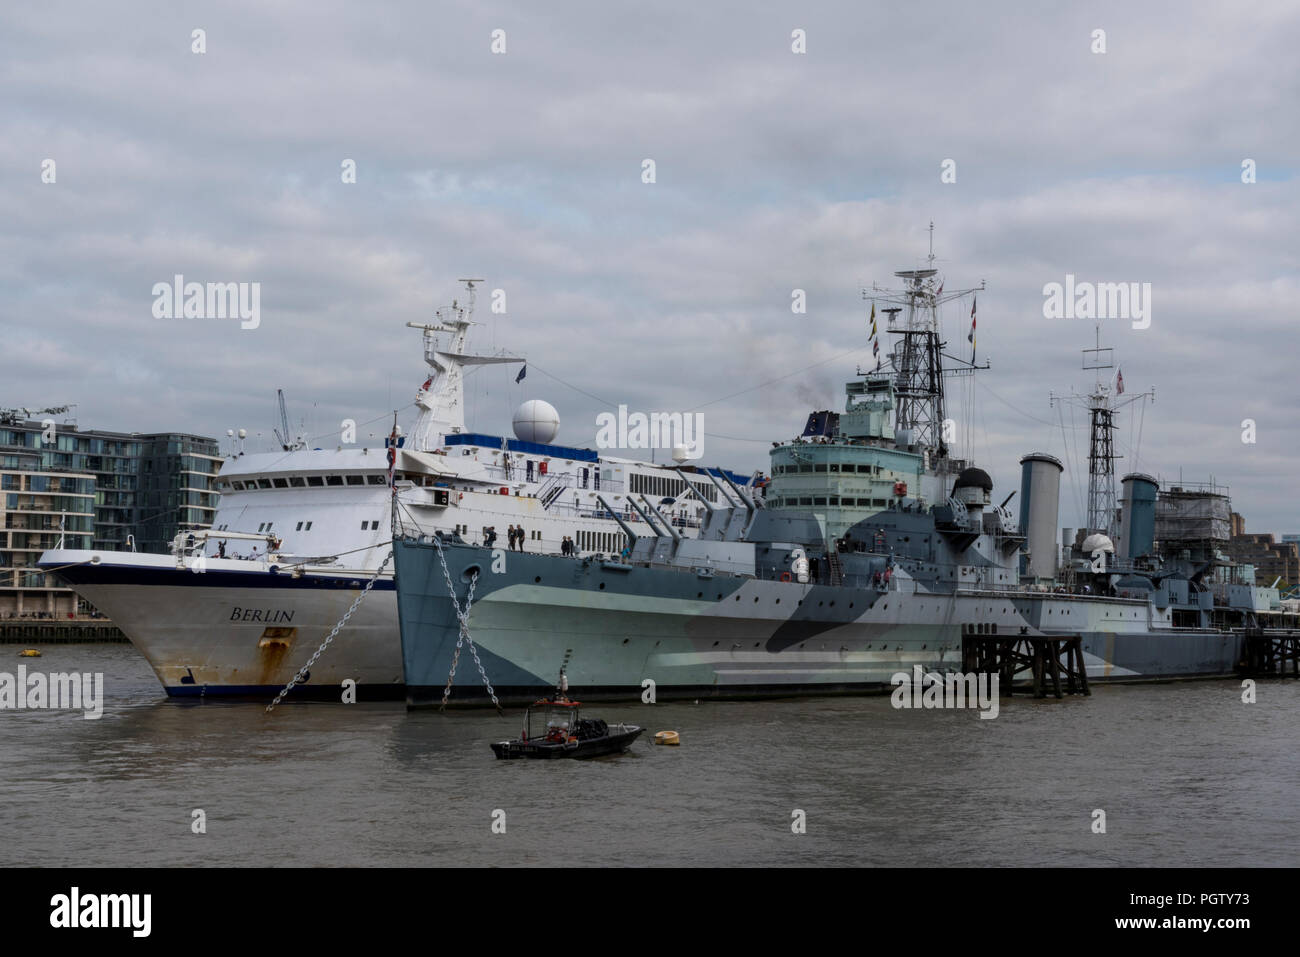 FTI cruises cruise ship MS Berlin alongside HMS Belfast in central London. - Stock Image